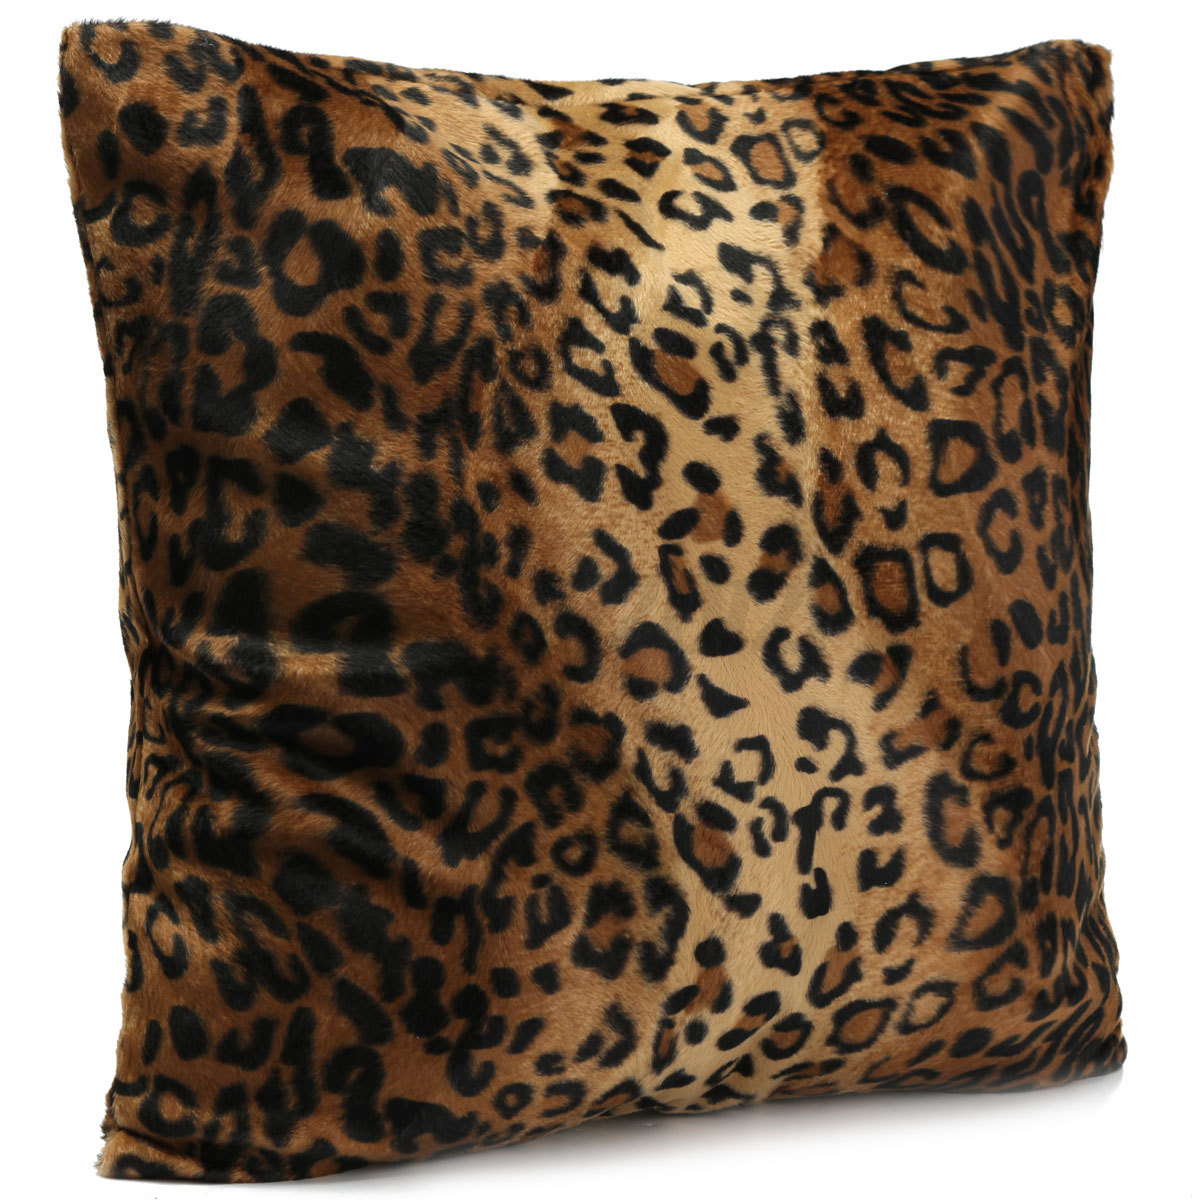 sofa throw covers asda vitra animal leopard tiger zebra pillow case cushion